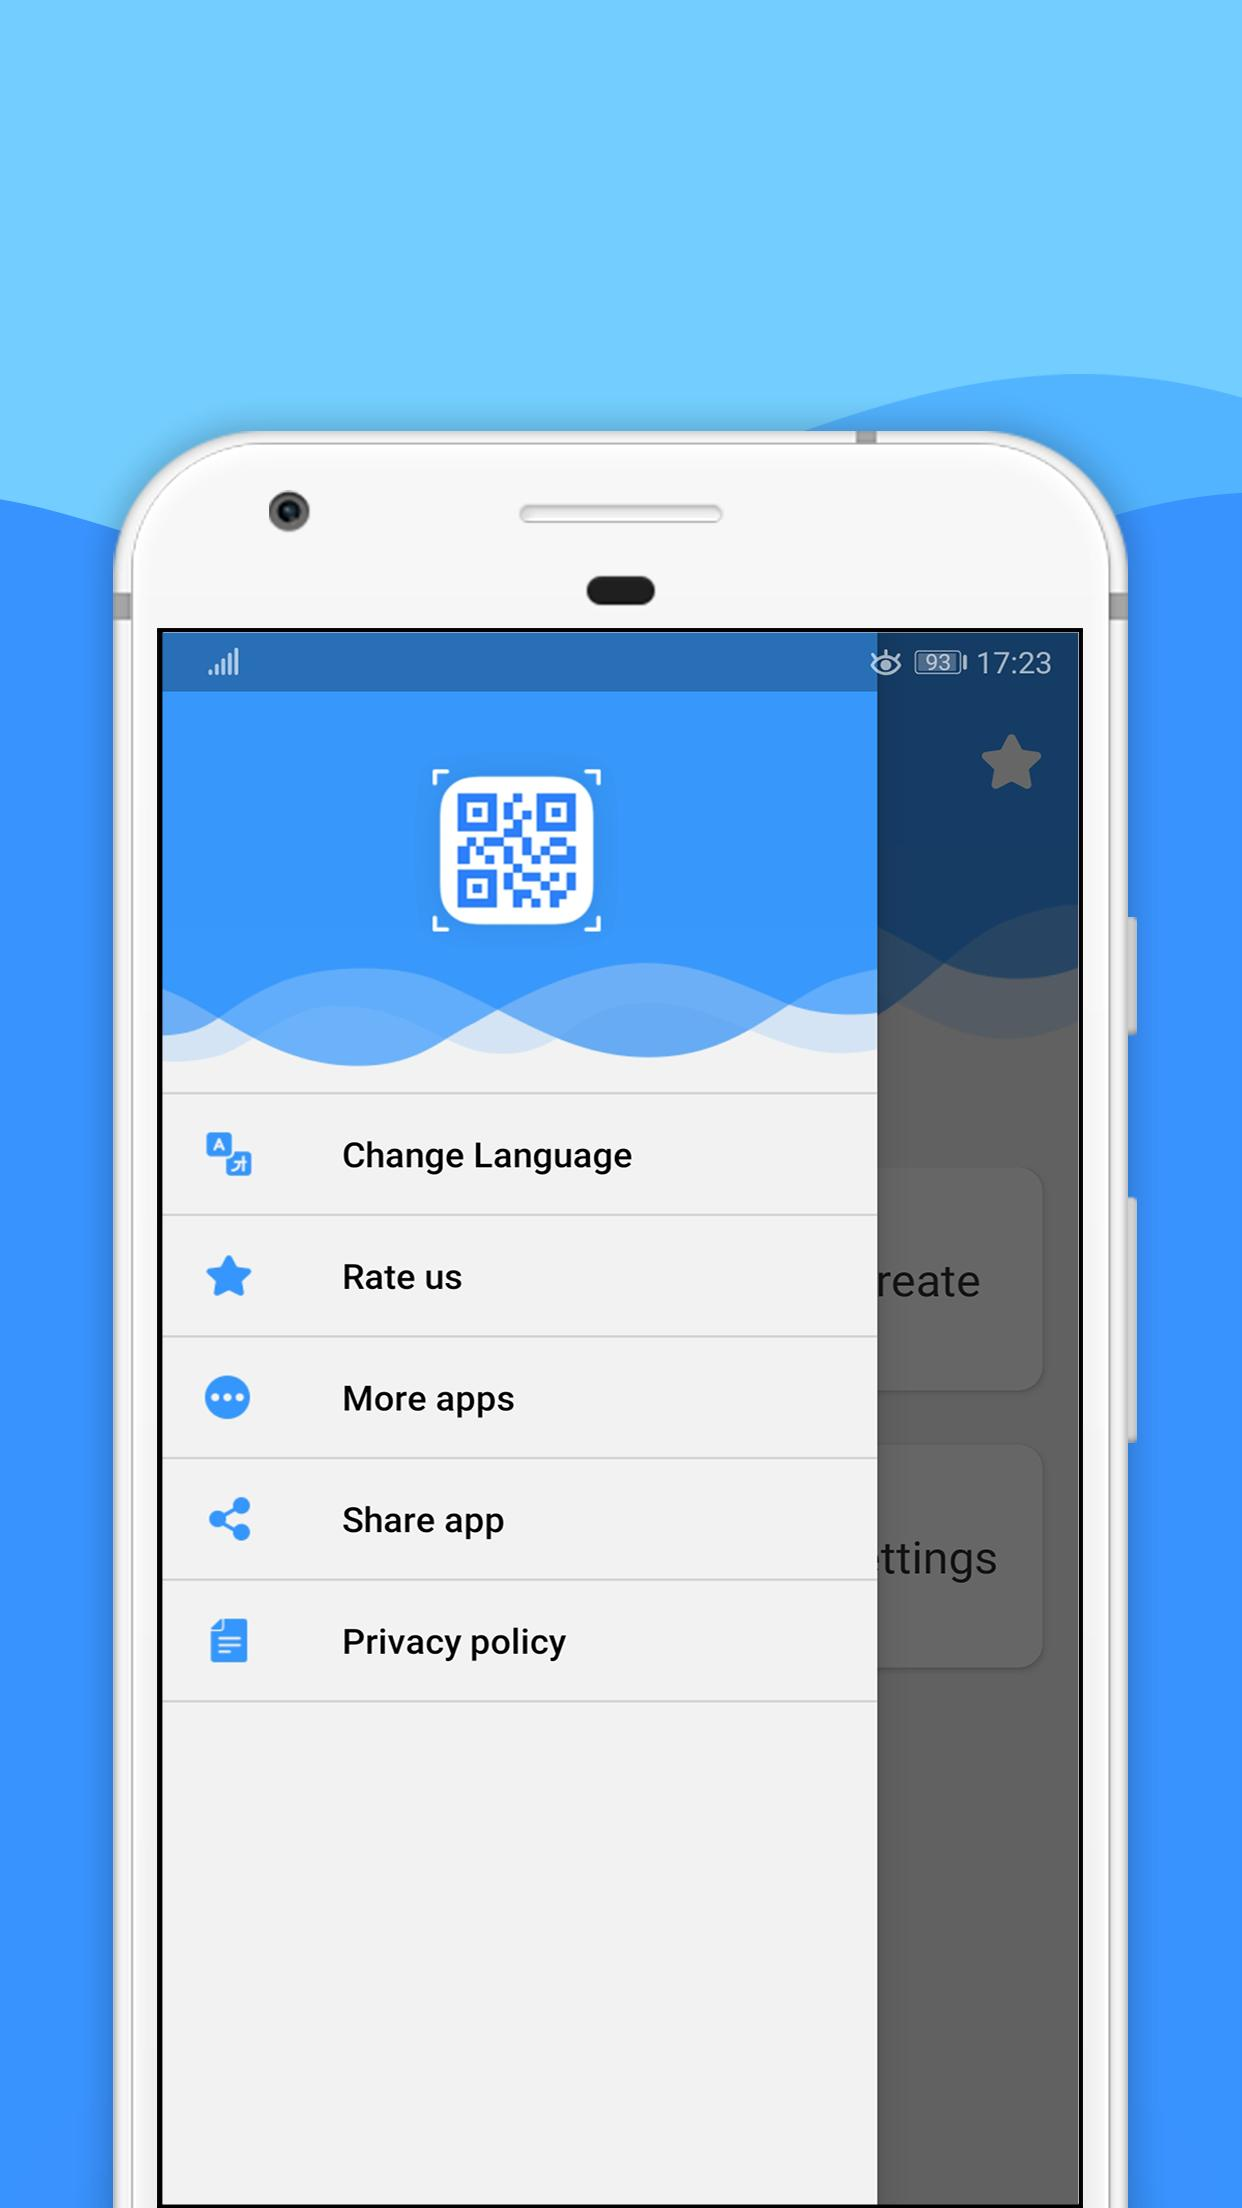 QR Code Scanner for Android (WeScan) for Android - APK Download